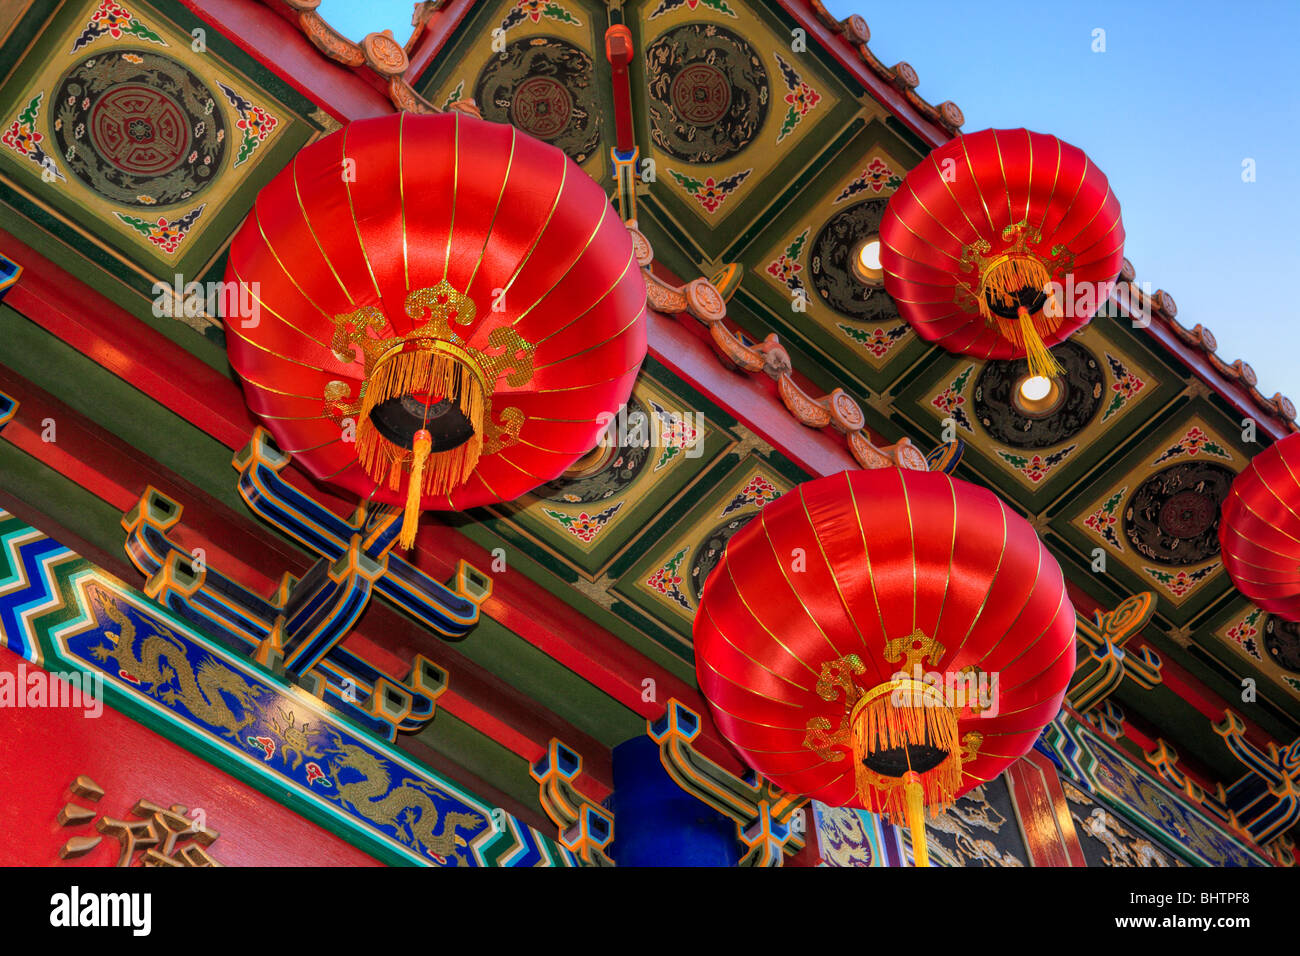 Victoria Chinatown entrance gate decorated for Year of the Tiger 2010 with lanterns-Victoria, British Columbia, - Stock Image